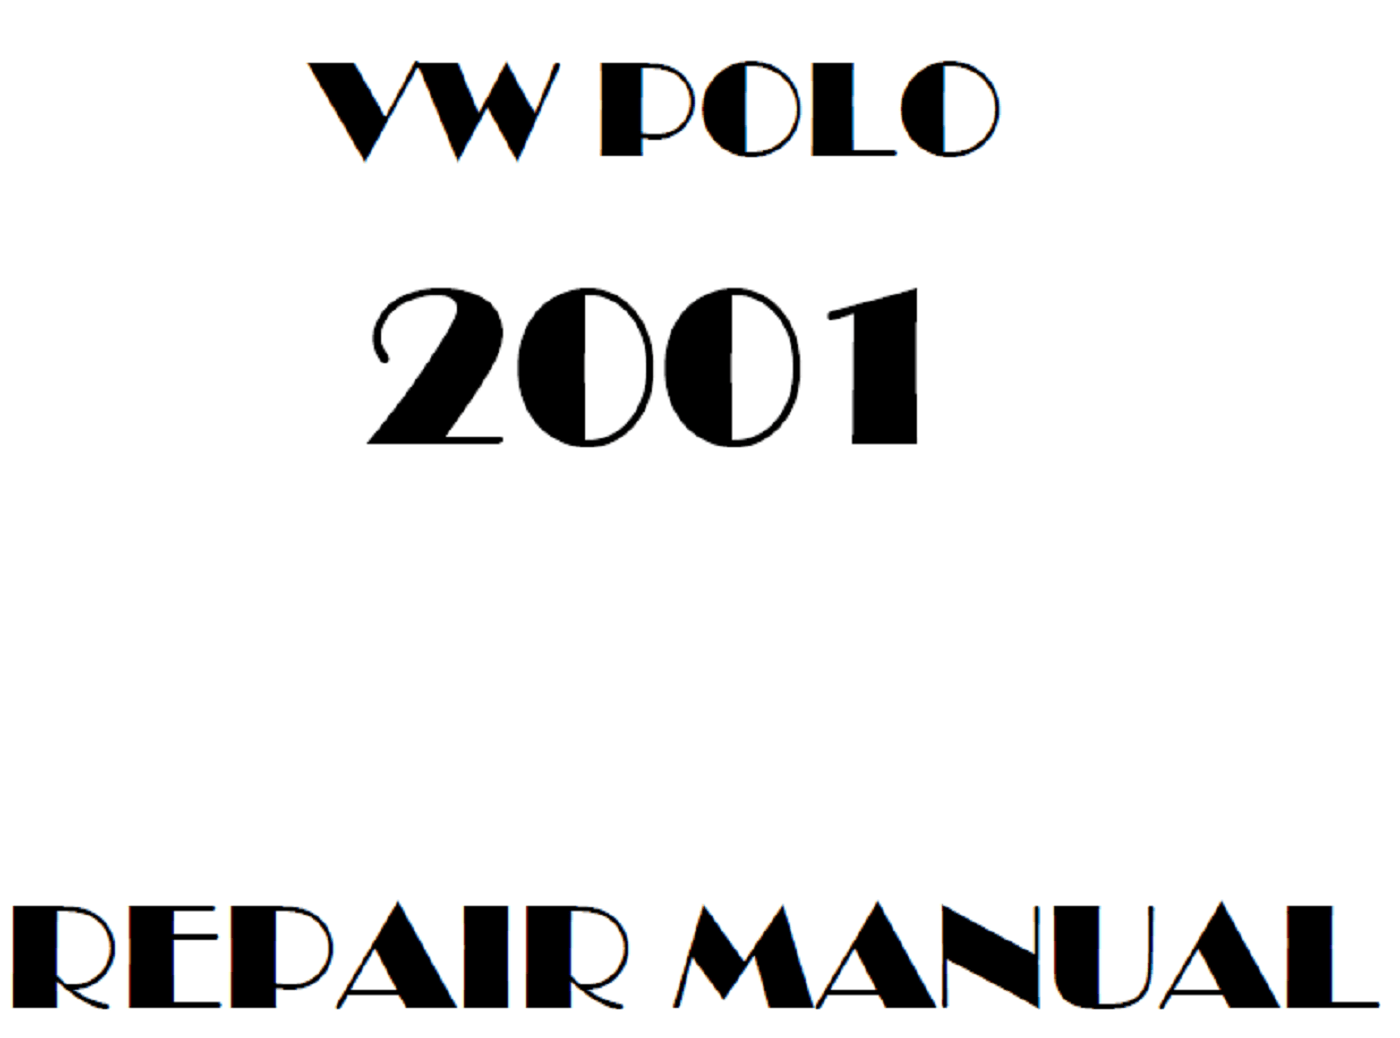 2001 Volkswagen Polo repair manual